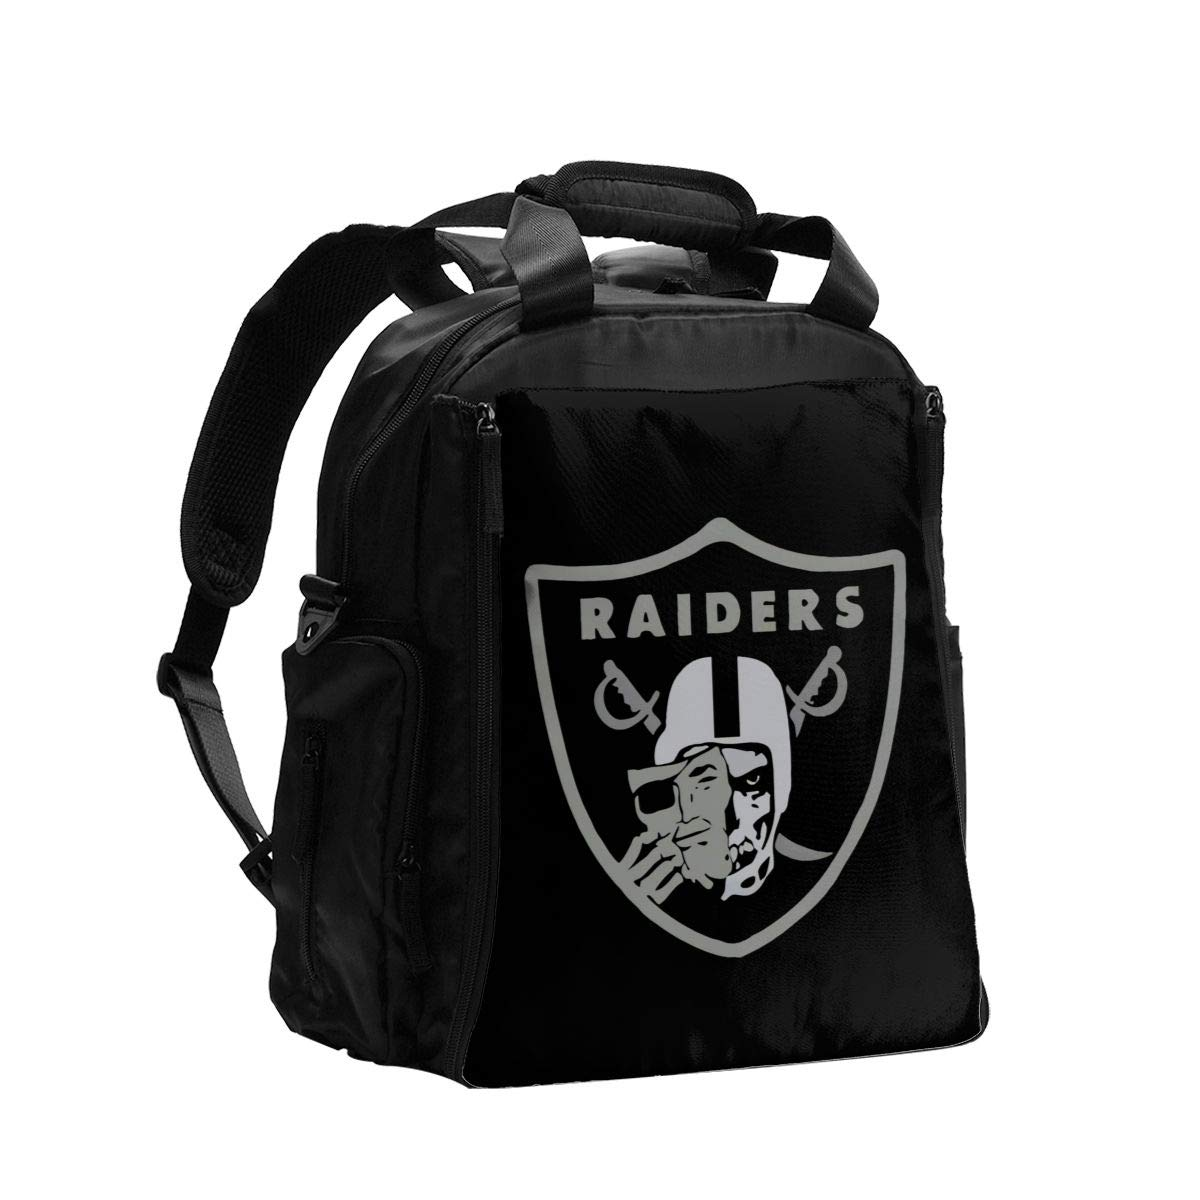 Raiders Skull Diaper Bag Backpack Waterproof Multi-Function Baby Changing Bags Maternity Nappy Bags Durable Large Capacity for Mom Dad Travel Baby Care